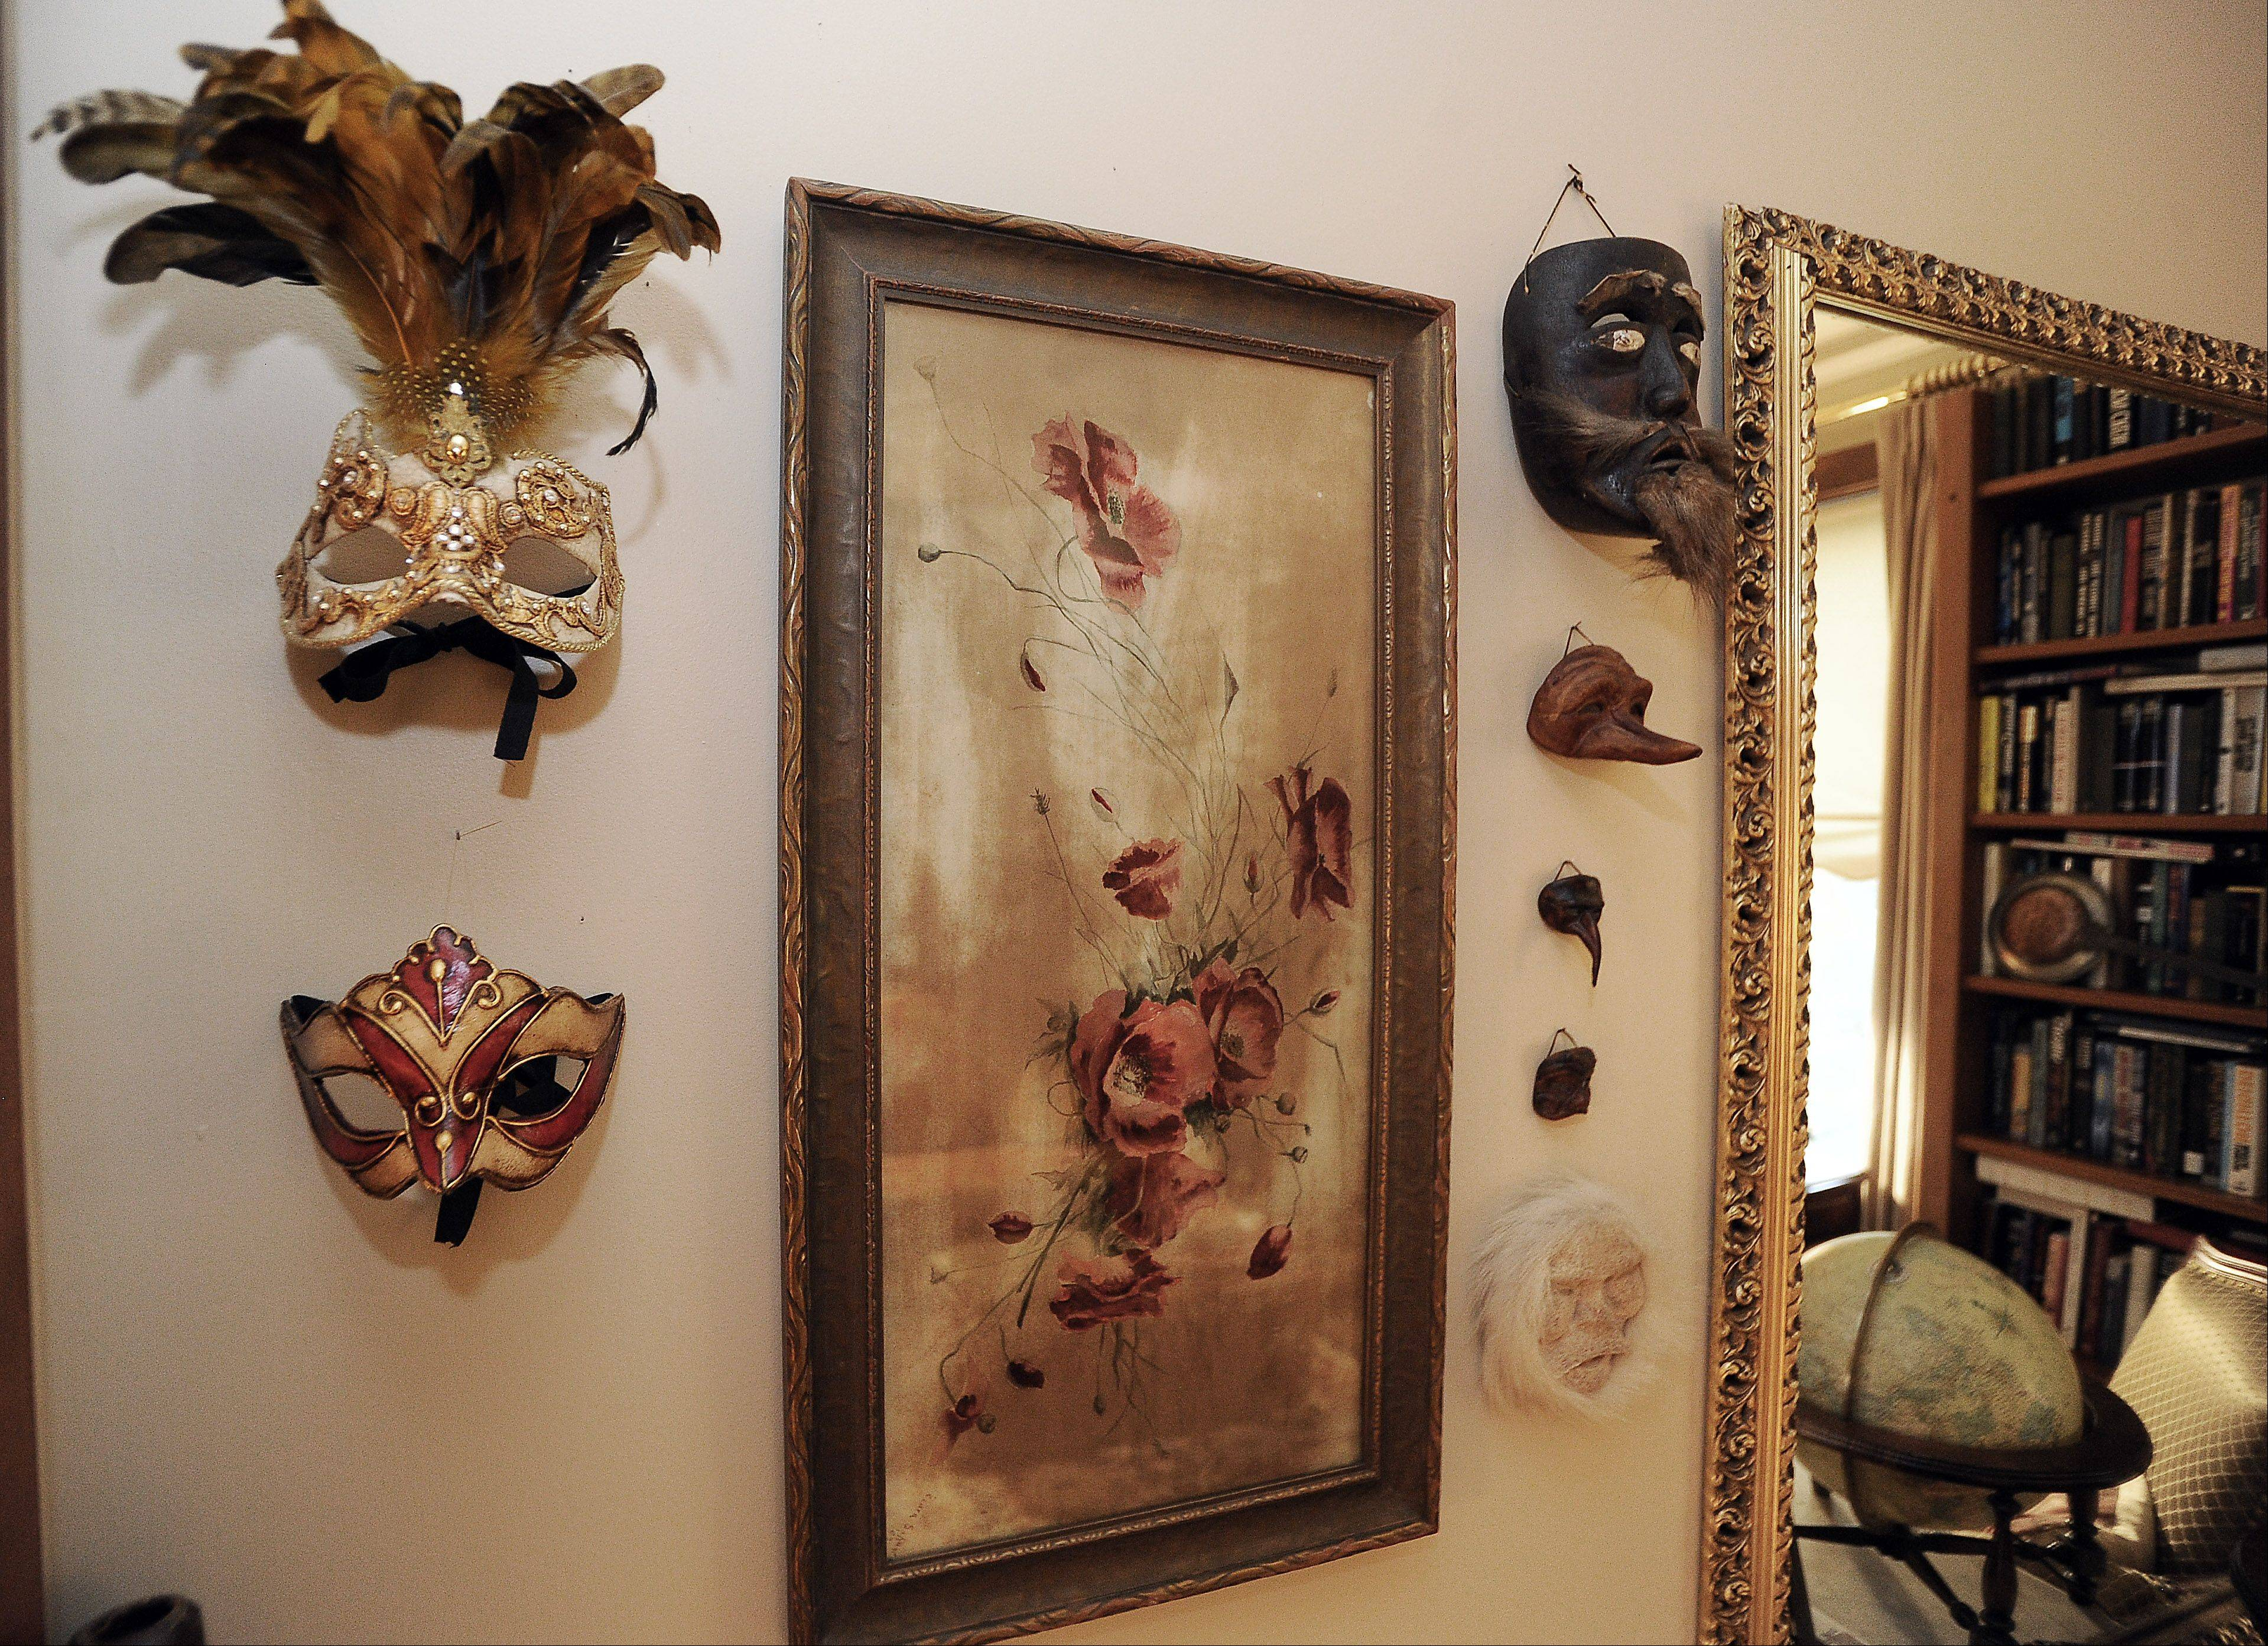 Copies of Venetian masks collected by Laurie Turpin-Soderholm hang on a wall in the library.